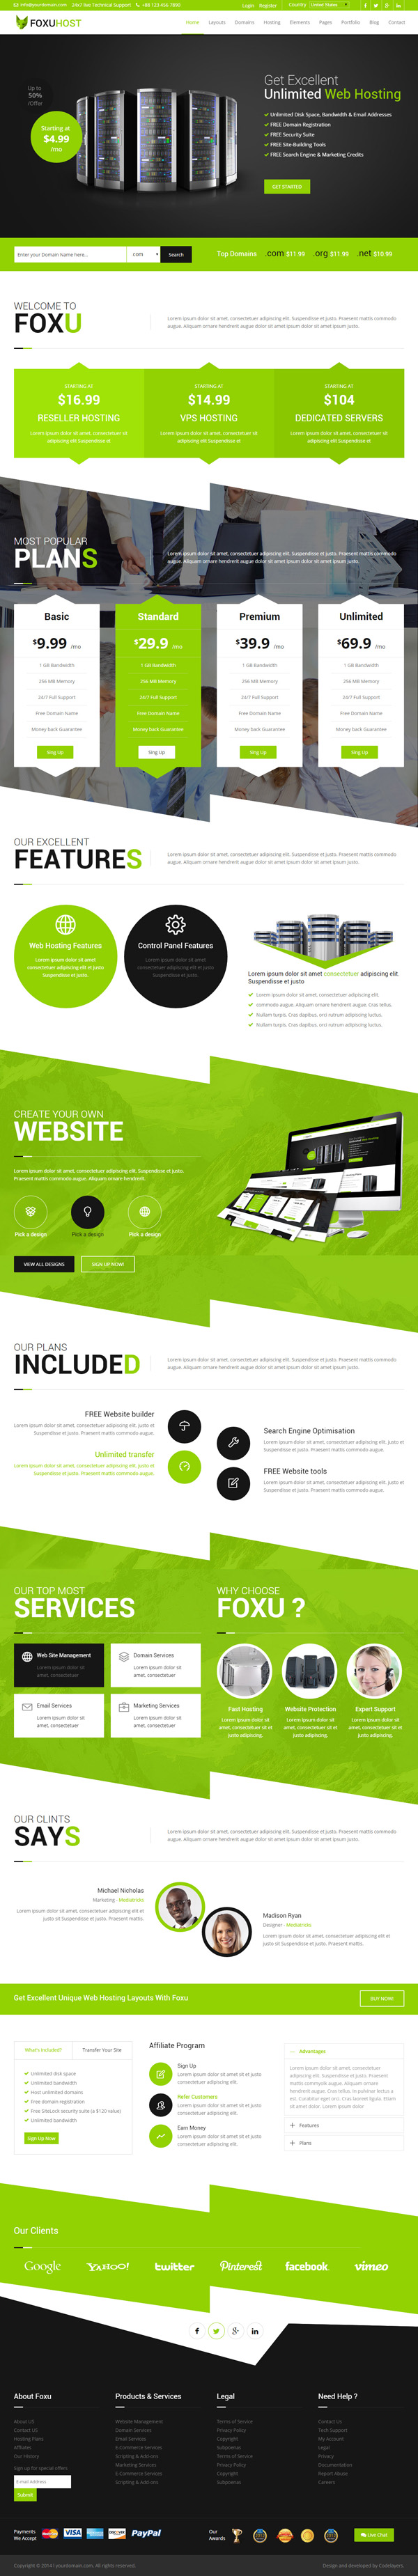 Foxuhost - Web Hosting, Responsive HTML5 Template